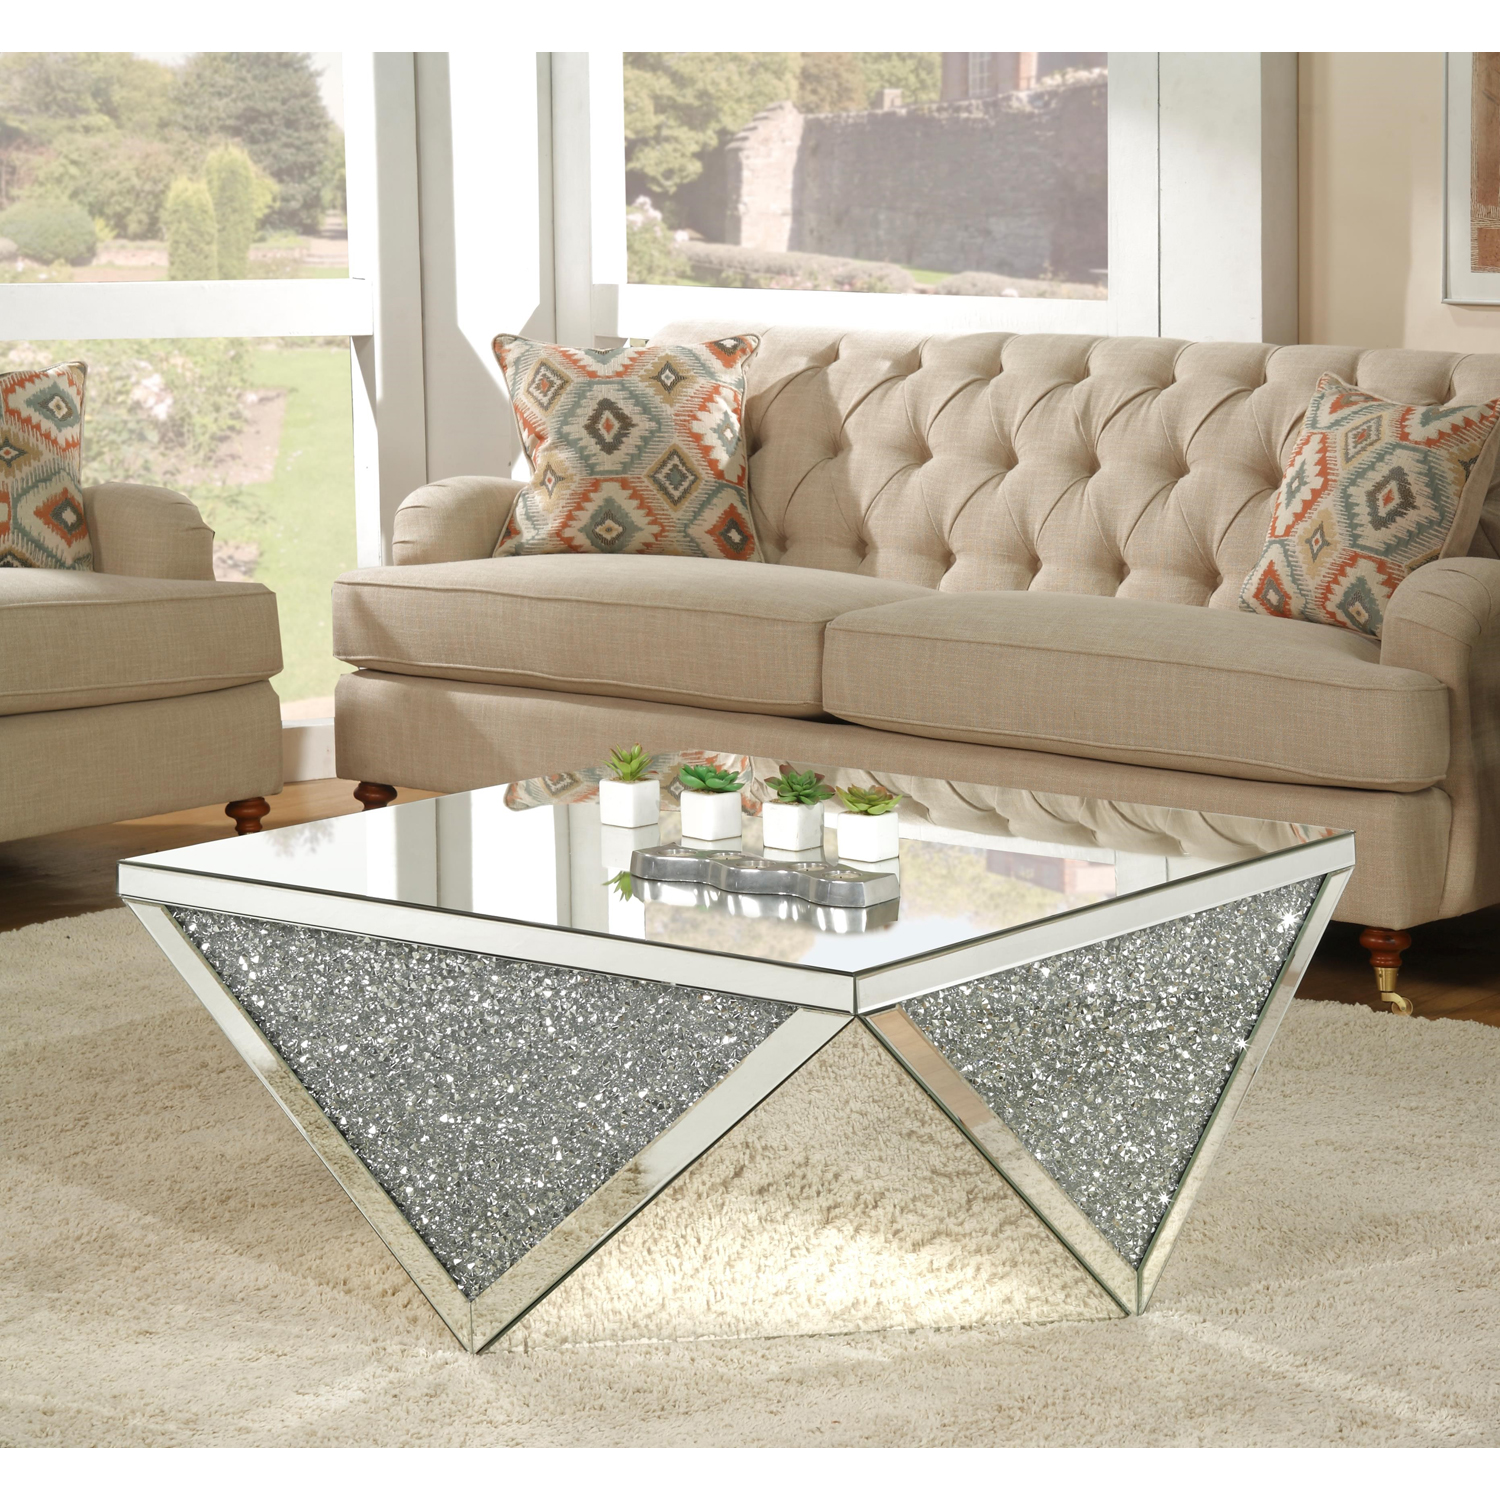 Acme Furniture Noralie Coffee Table Mirrored Walmart Com Walmart Com